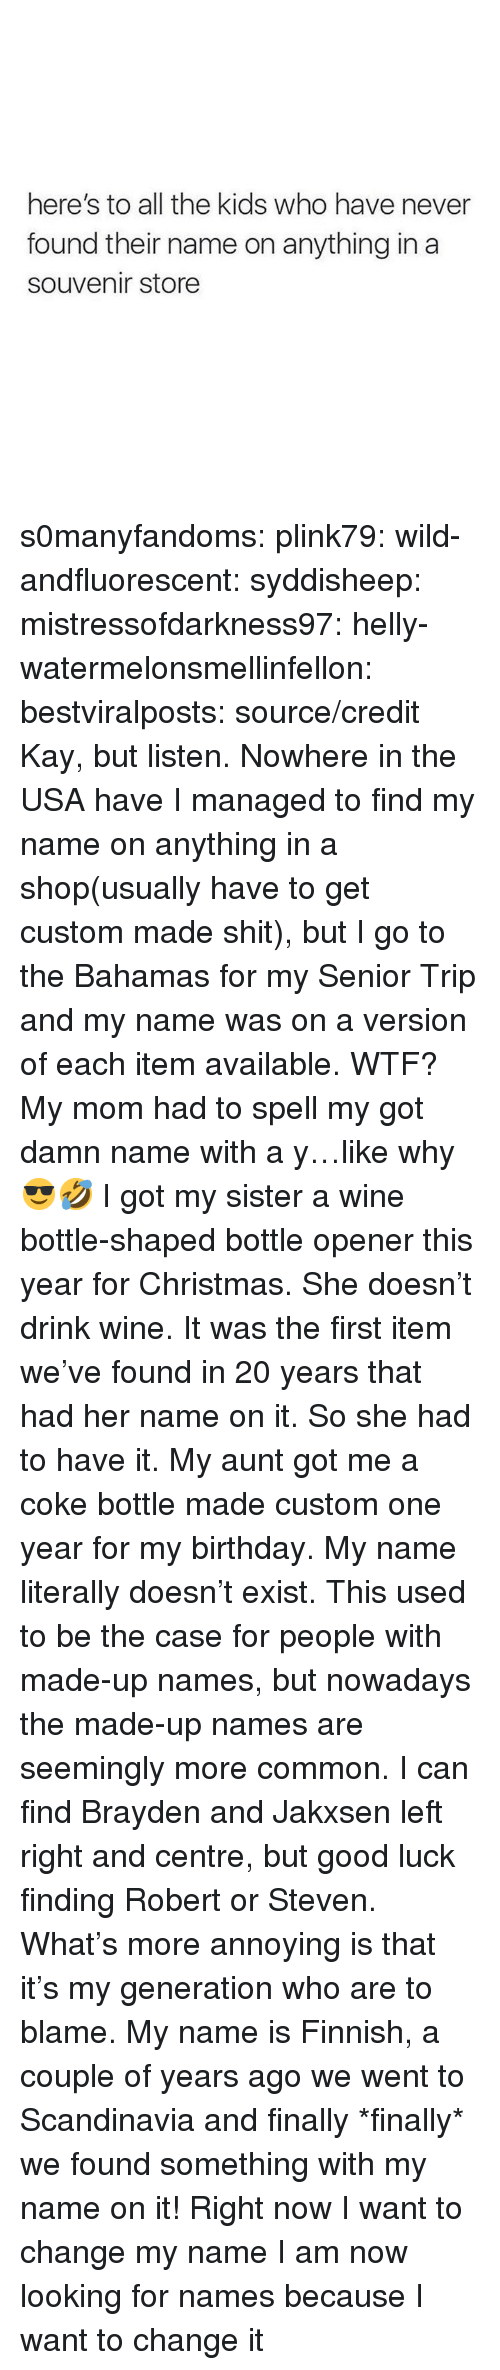 the bahamas: here's to all the kids who have never  found their name on anything in a  souvenir store s0manyfandoms: plink79:  wild-andfluorescent:  syddisheep:  mistressofdarkness97:  helly-watermelonsmellinfellon:  bestviralposts: source/credit Kay, but listen. Nowhere in the USA have I managed to find my name on anything in a shop(usually have to get custom made shit), but I go to the Bahamas for my Senior Trip and my name was on a version of each item available. WTF?    My mom had to spell my got damn name with a y…like why 😎🤣   I got my sister a wine bottle-shaped bottle opener this year for Christmas. She doesn't drink wine. It was the first item we've found in 20 years that had her name on it. So she had to have it.    My aunt got me a coke bottle made custom one year for my birthday. My name literally doesn't exist.    This used to be the case for people with made-up names, but nowadays the made-up names are seemingly more common. I can find Brayden and Jakxsen left right and centre, but good luck finding Robert or Steven. What's more annoying is that it's my generation who are to blame.  My name is Finnish, a couple of years ago we went to Scandinavia and finally *finally* we found something with my name on it!  Right now I want to change my name I am now looking for names because I want to change it